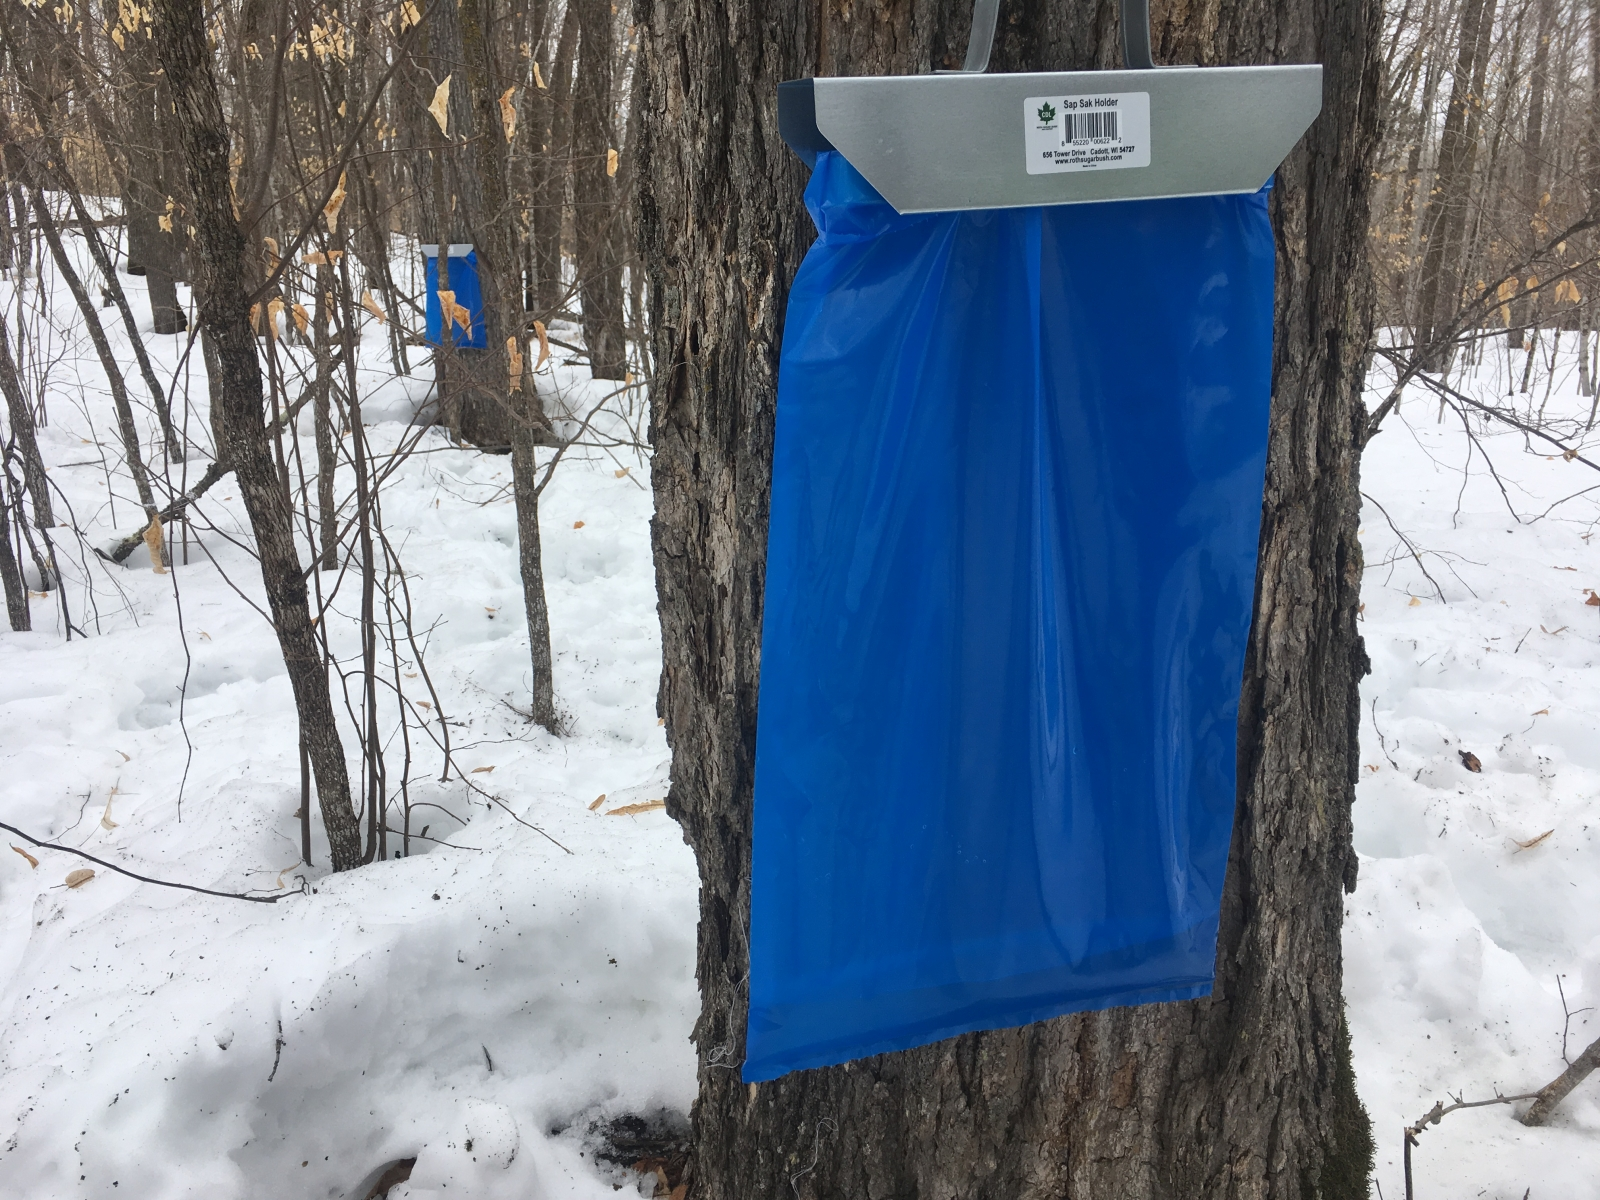 Maple sap bags